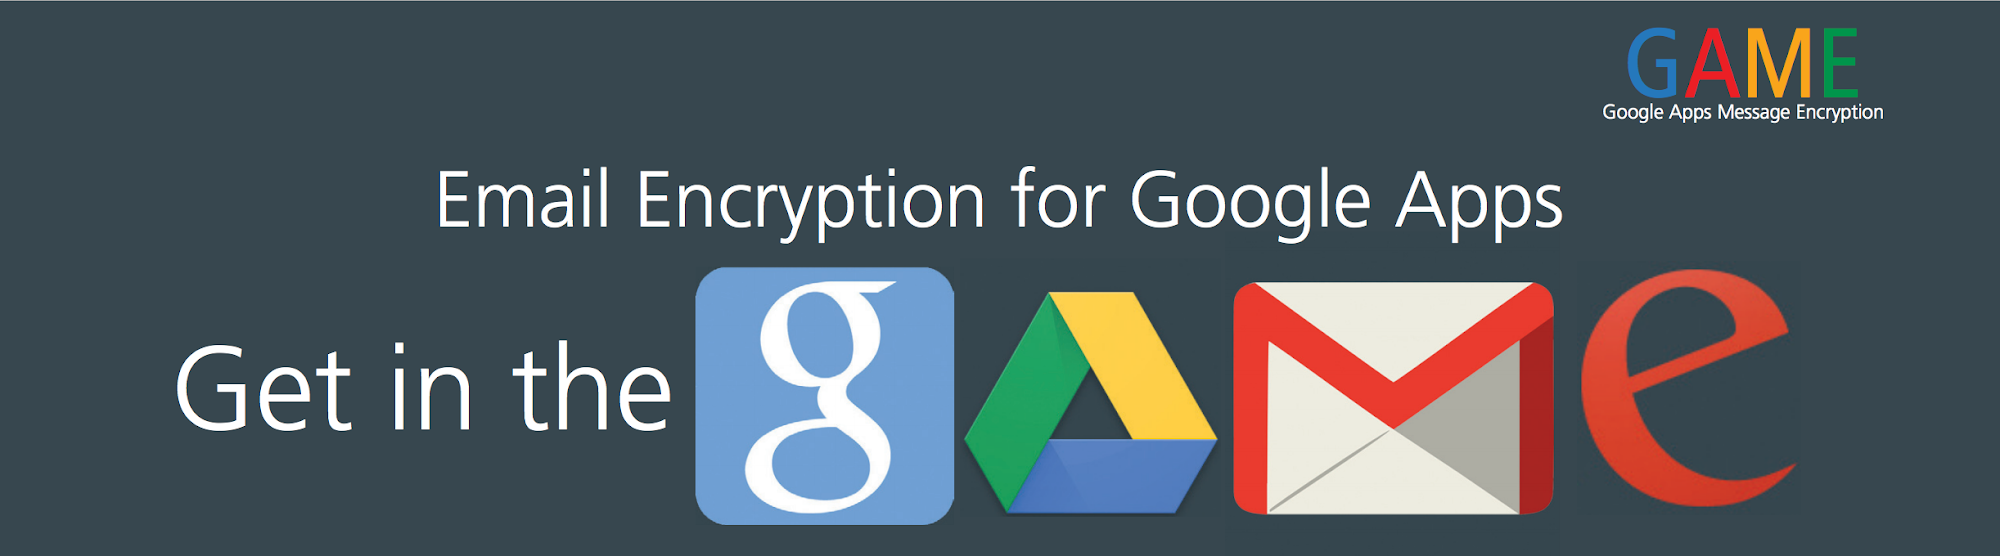 Google Apps Message Encryption Demo